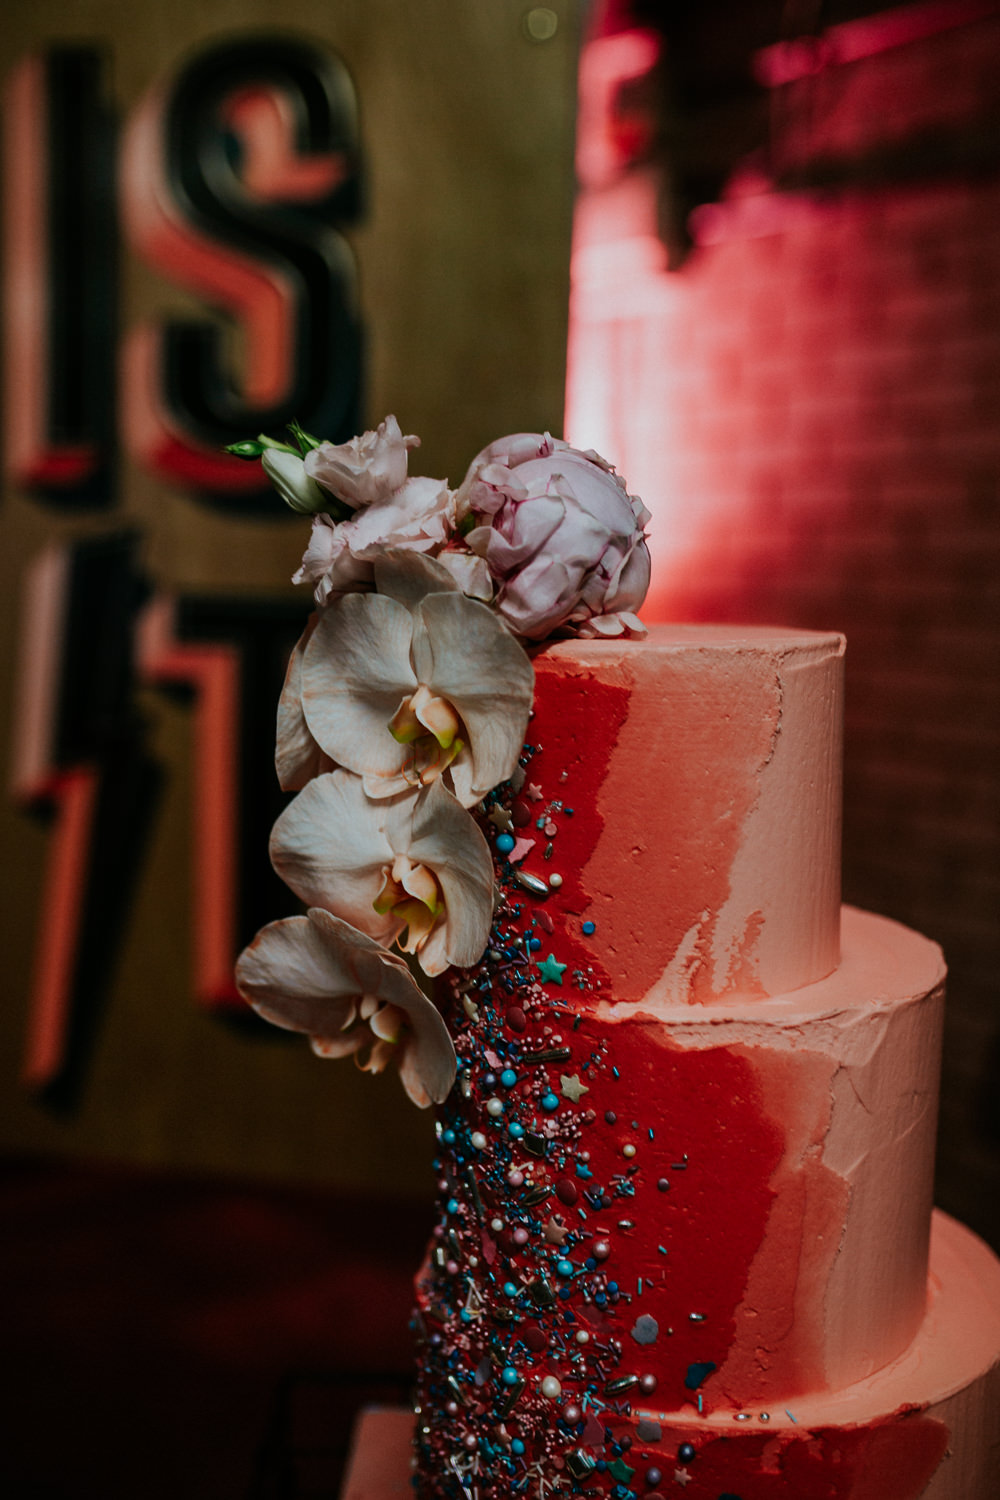 Cake Cakes Floral Painted Pink Brushstroke Neon Sign Wedding Ideas State Of Love and Trust Photography